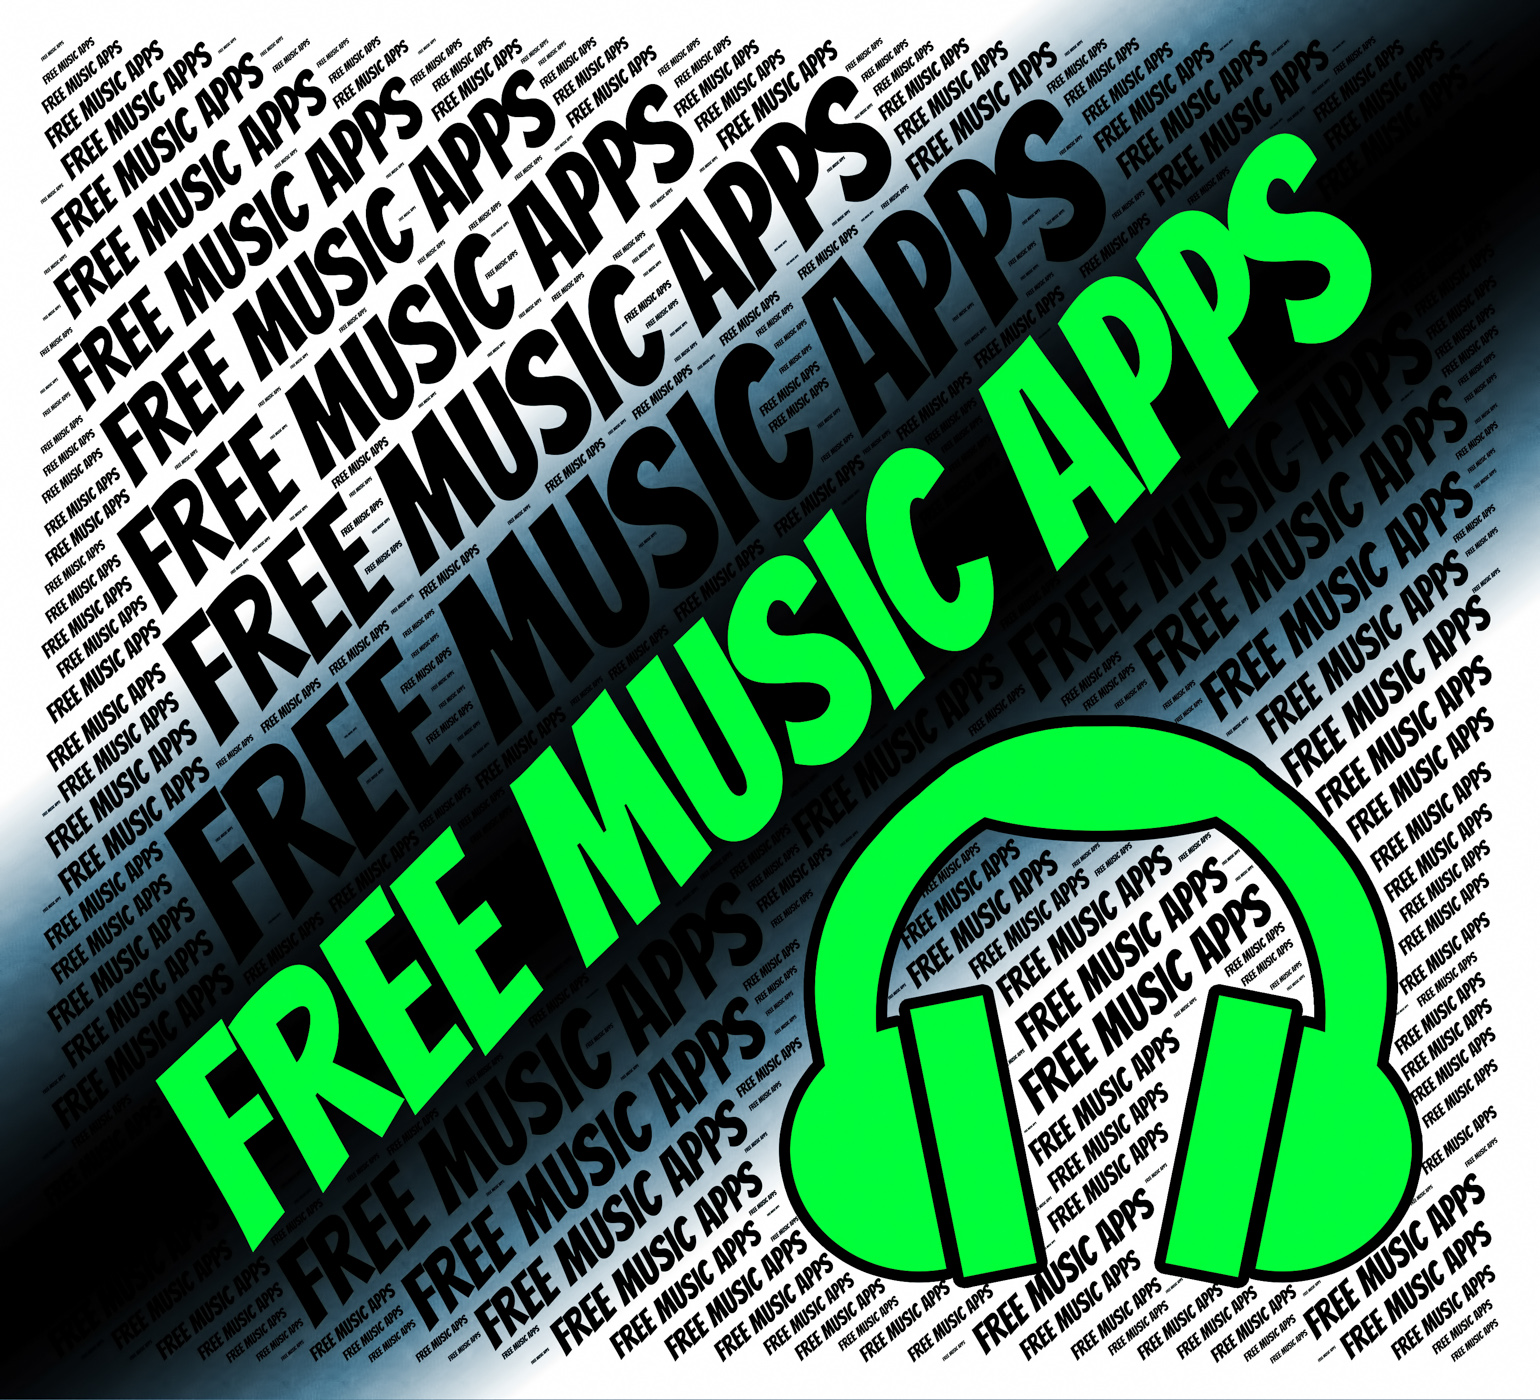 Free Music Apps Indicates Sound Track And Applications, Acoustic, Harmonies, Sound, Songs, HQ Photo